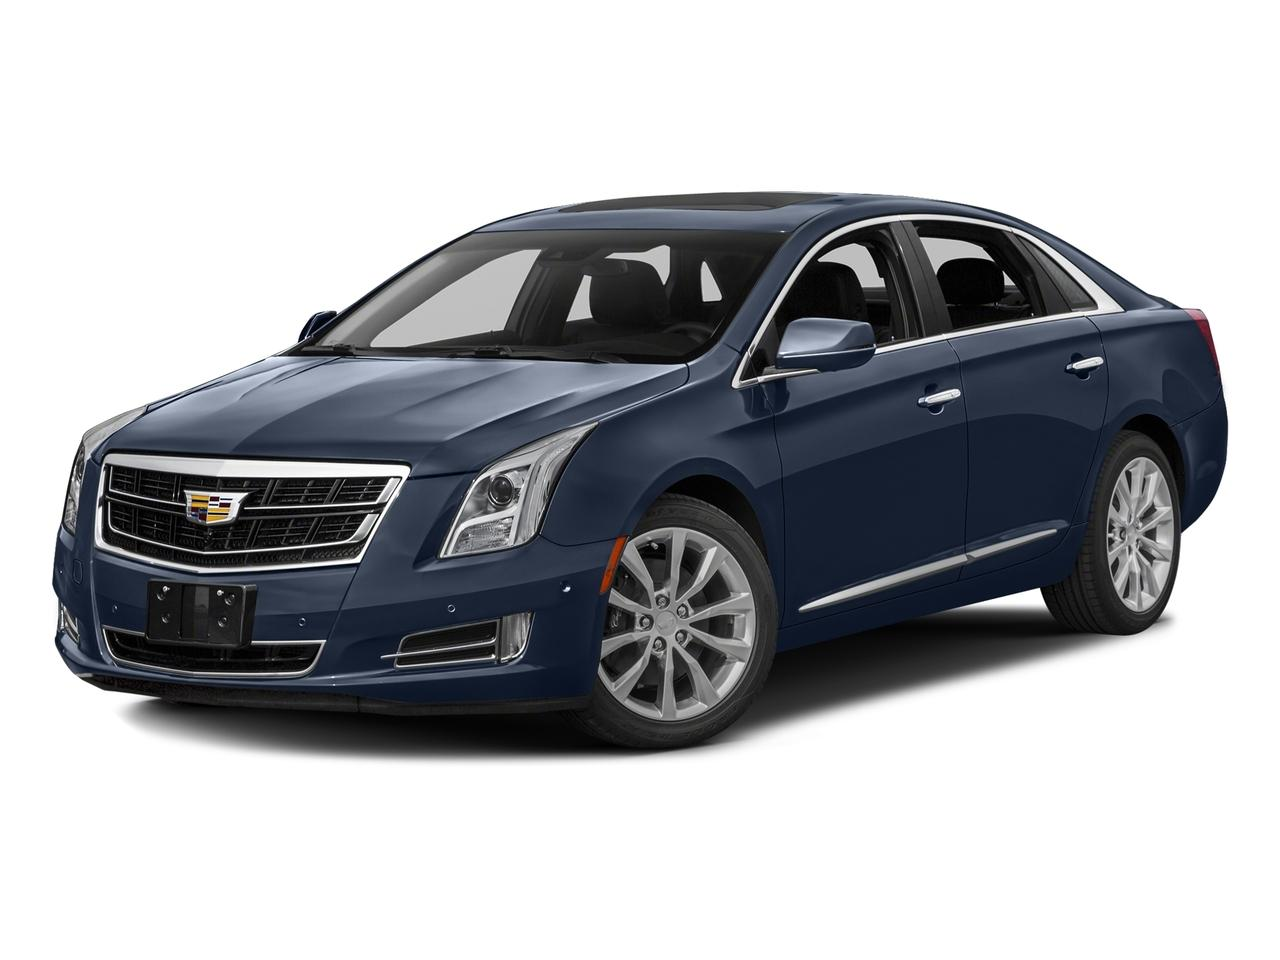 2016 Cadillac XTS Vehicle Photo in Gainesville, GA 30504